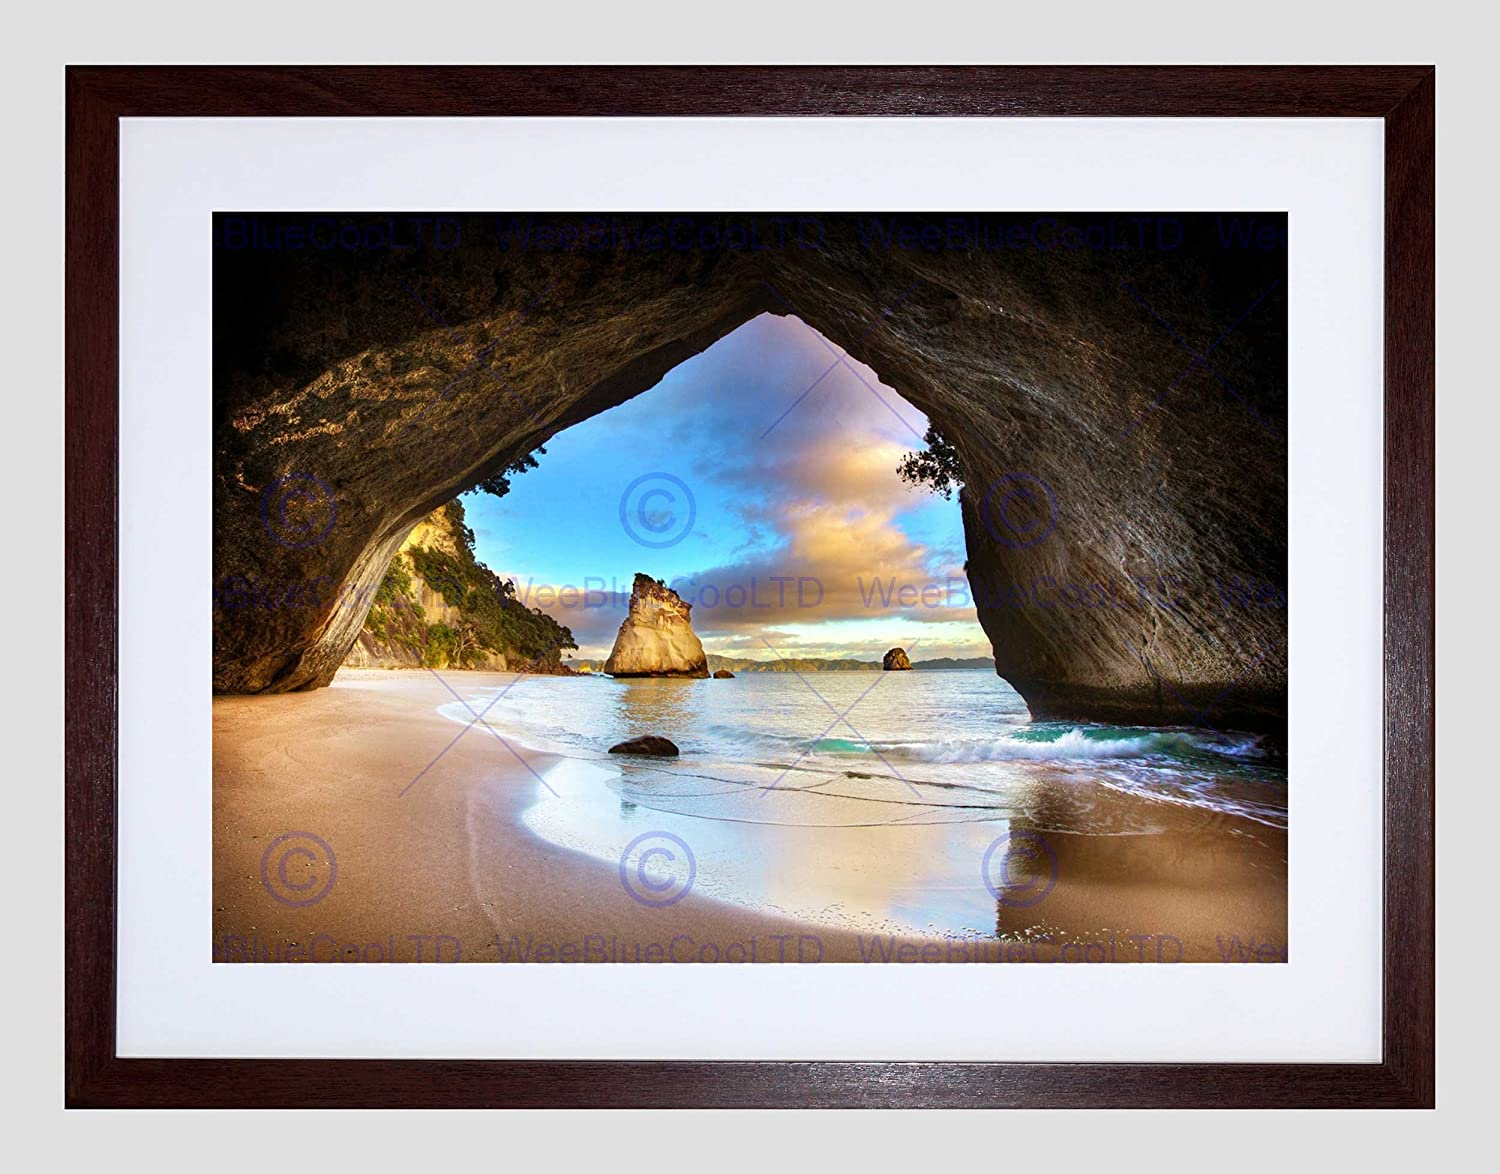 NATURE LANDSCAPE BEACH SEA ROCK EROSION STACK FRAMED PRINT B12X4755